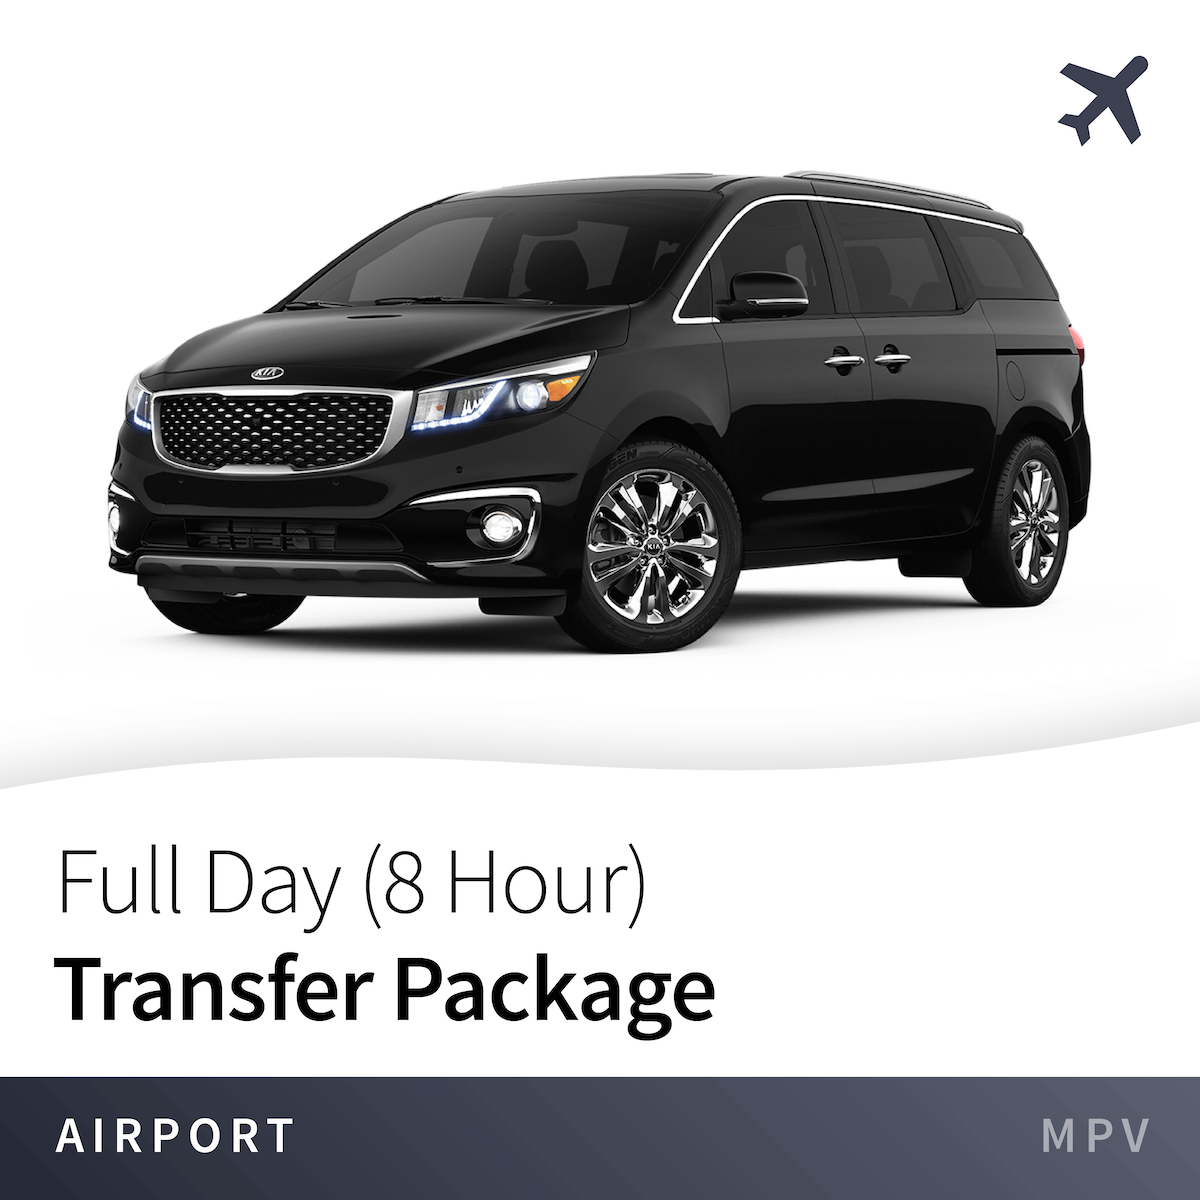 Full Day (8 Hour) Transfer Package From Airport - MPV 2